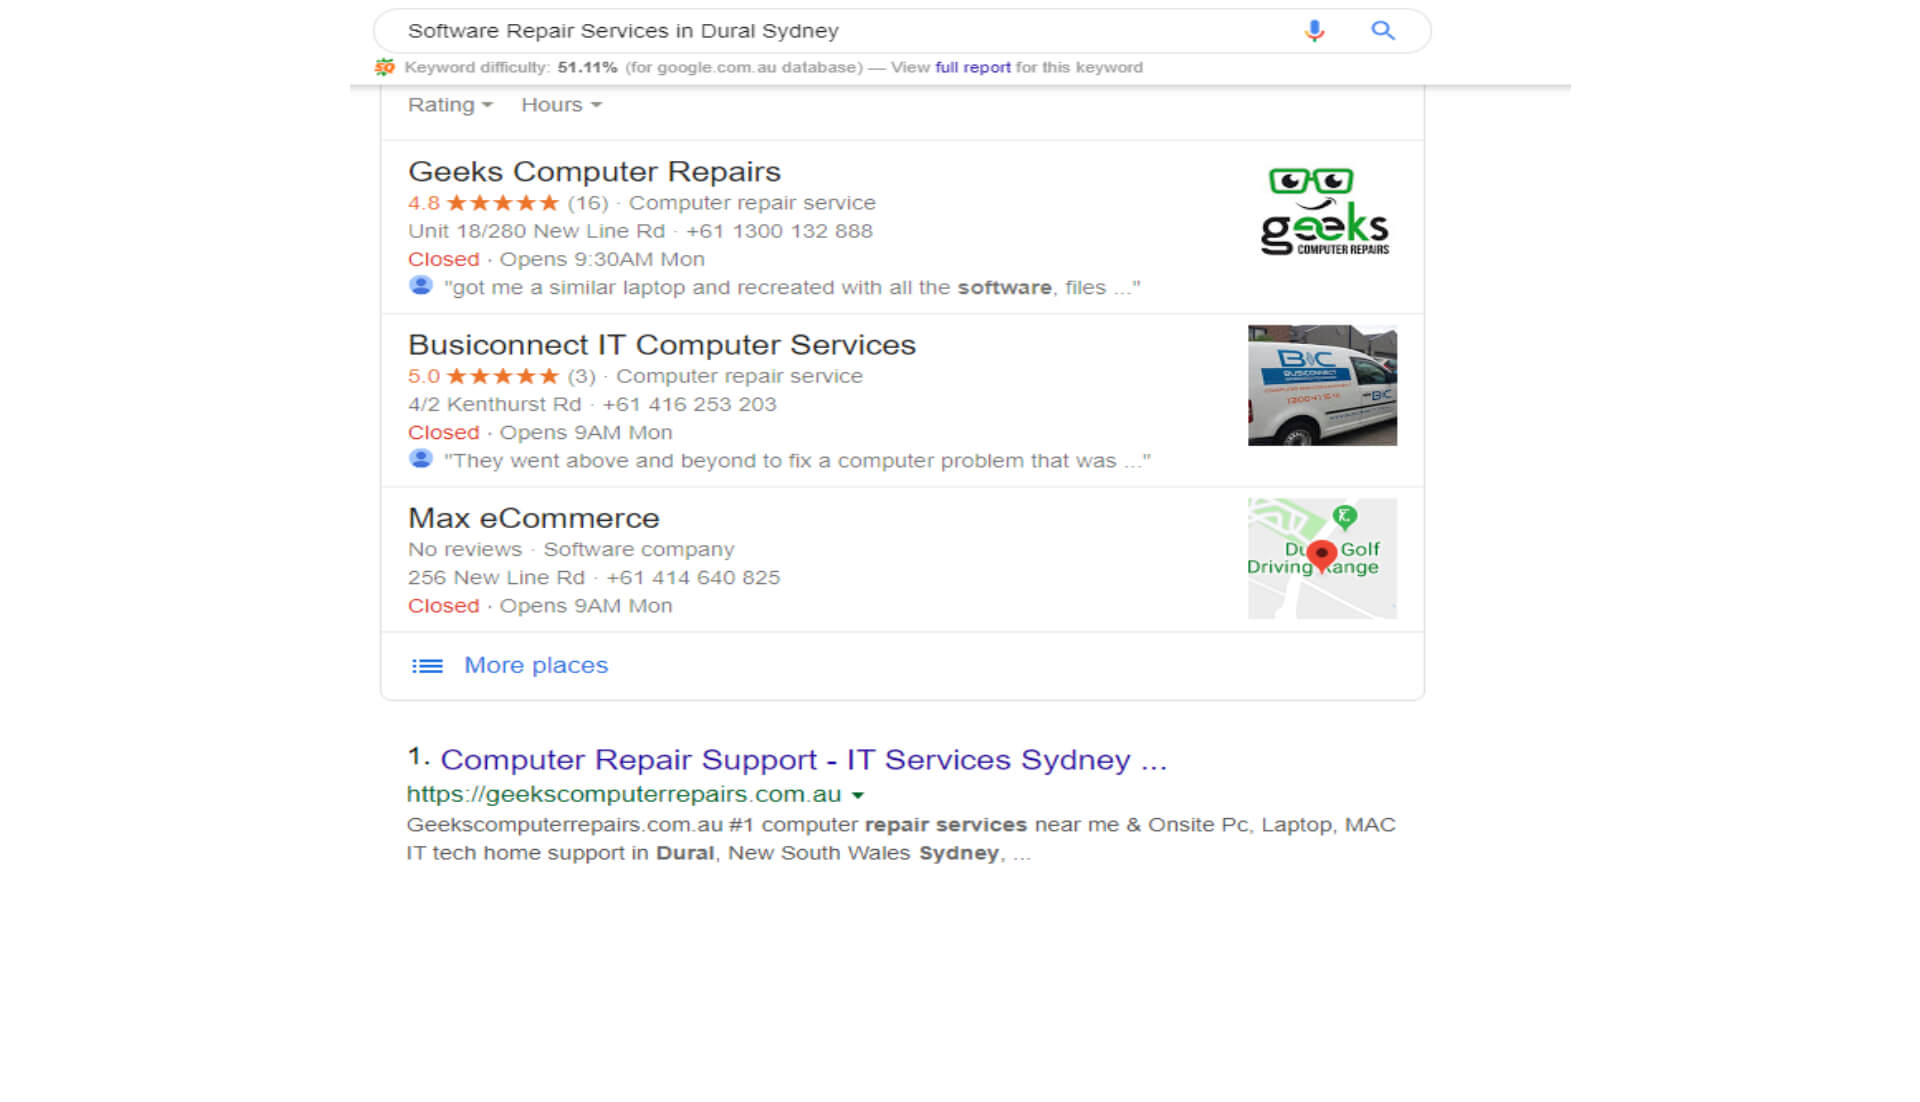 Software Repair Services in Dural Sydney